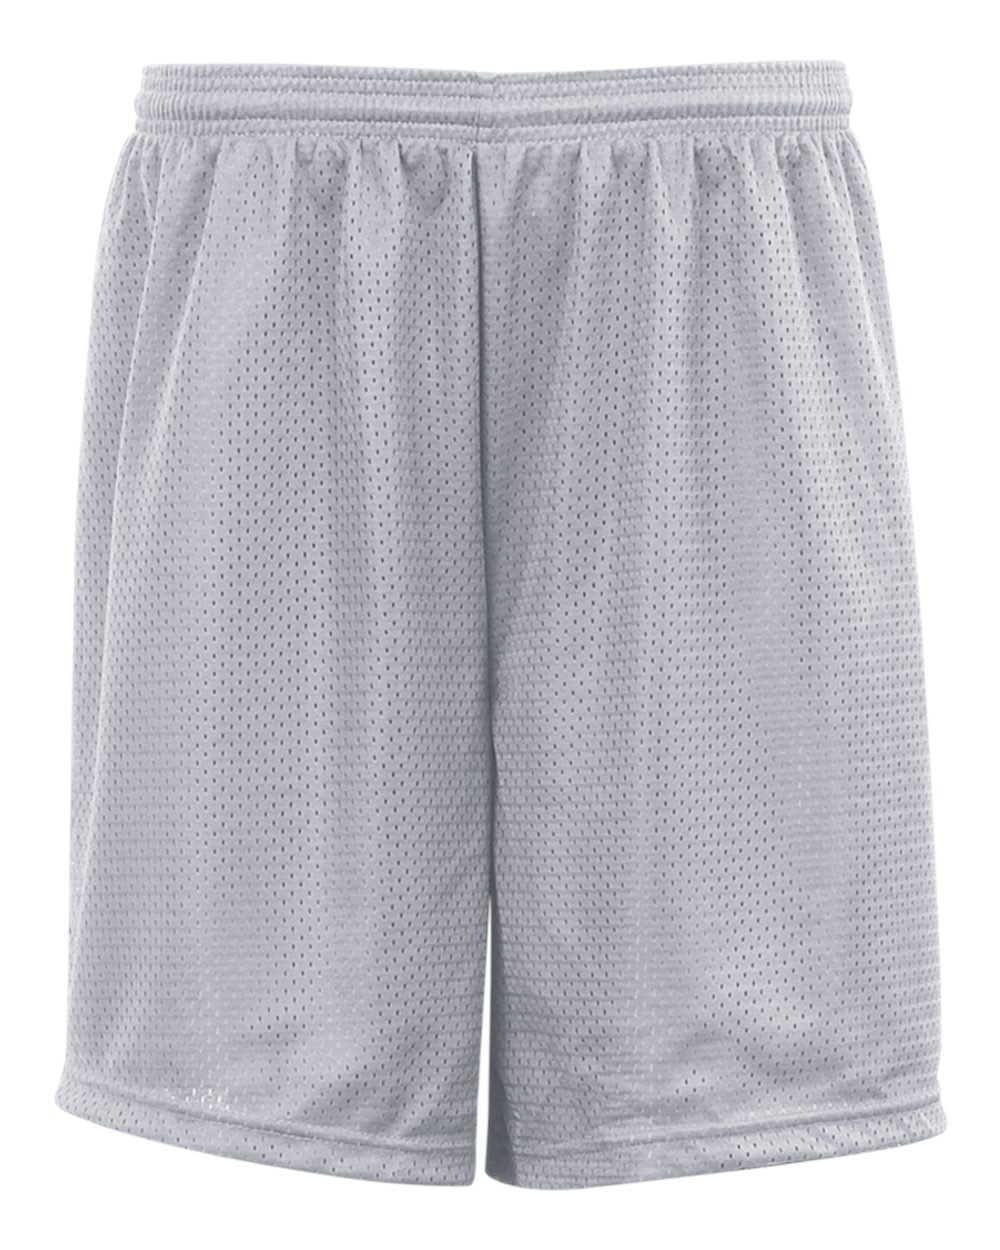 Badger Mens Mesh/Tricot 9 inch Short